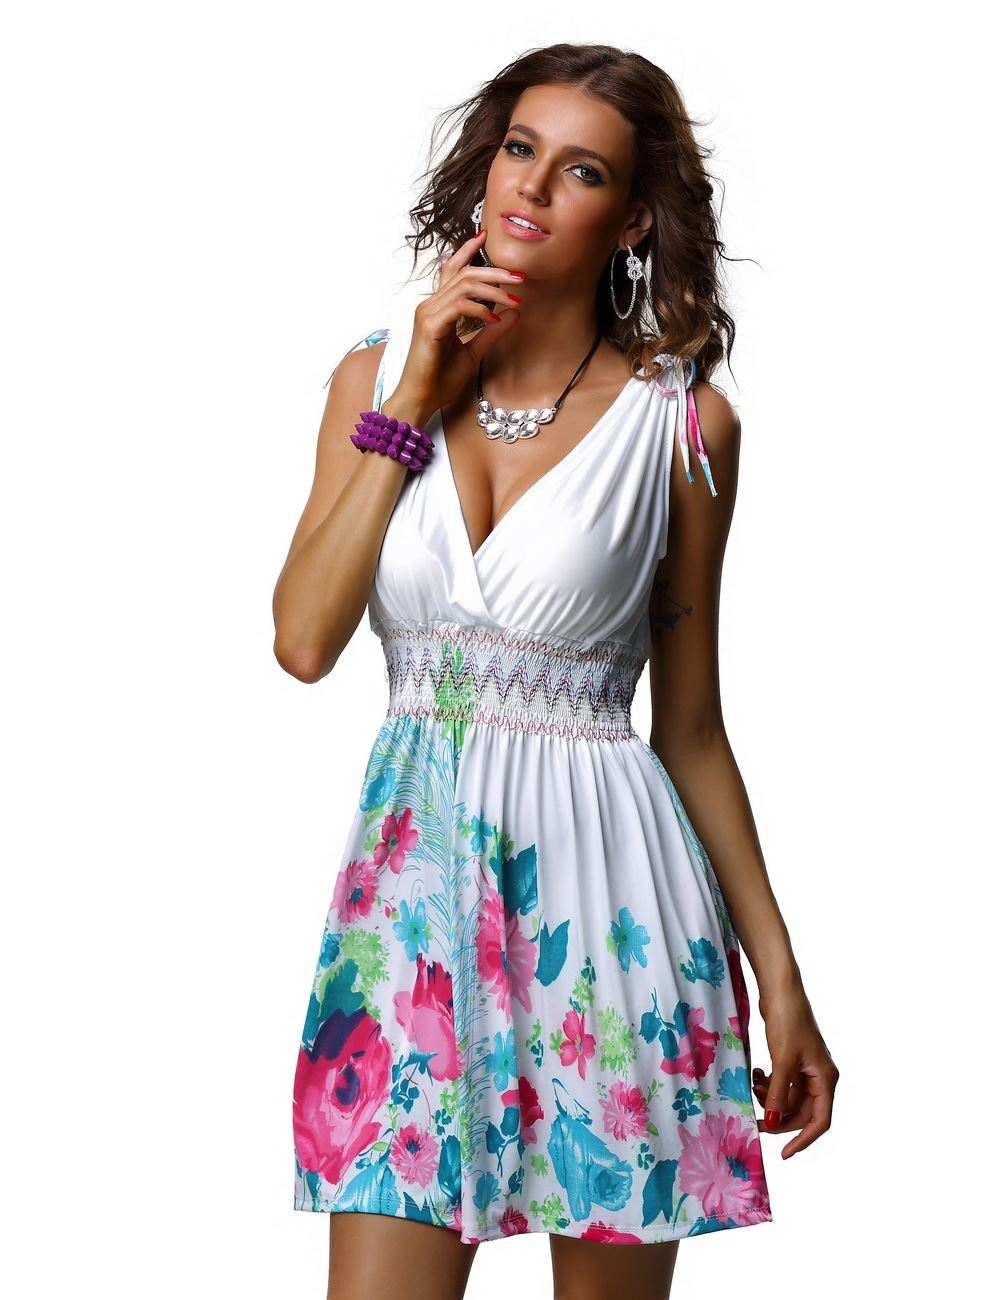 Summer dresses uk